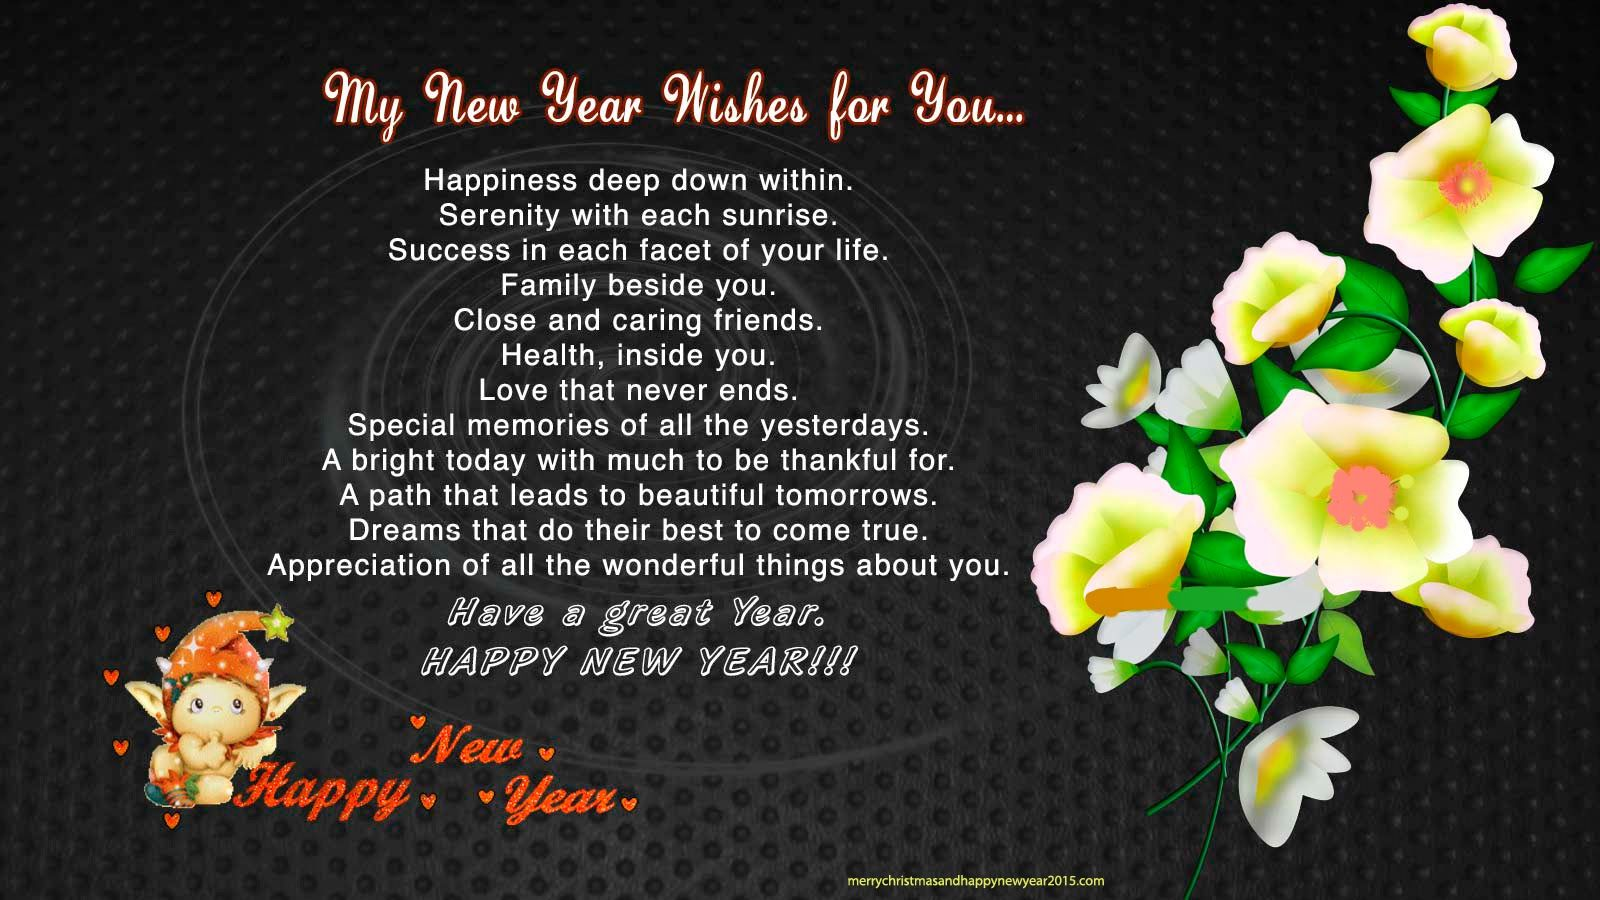 new year reflection poems New Year 2015 poems in English